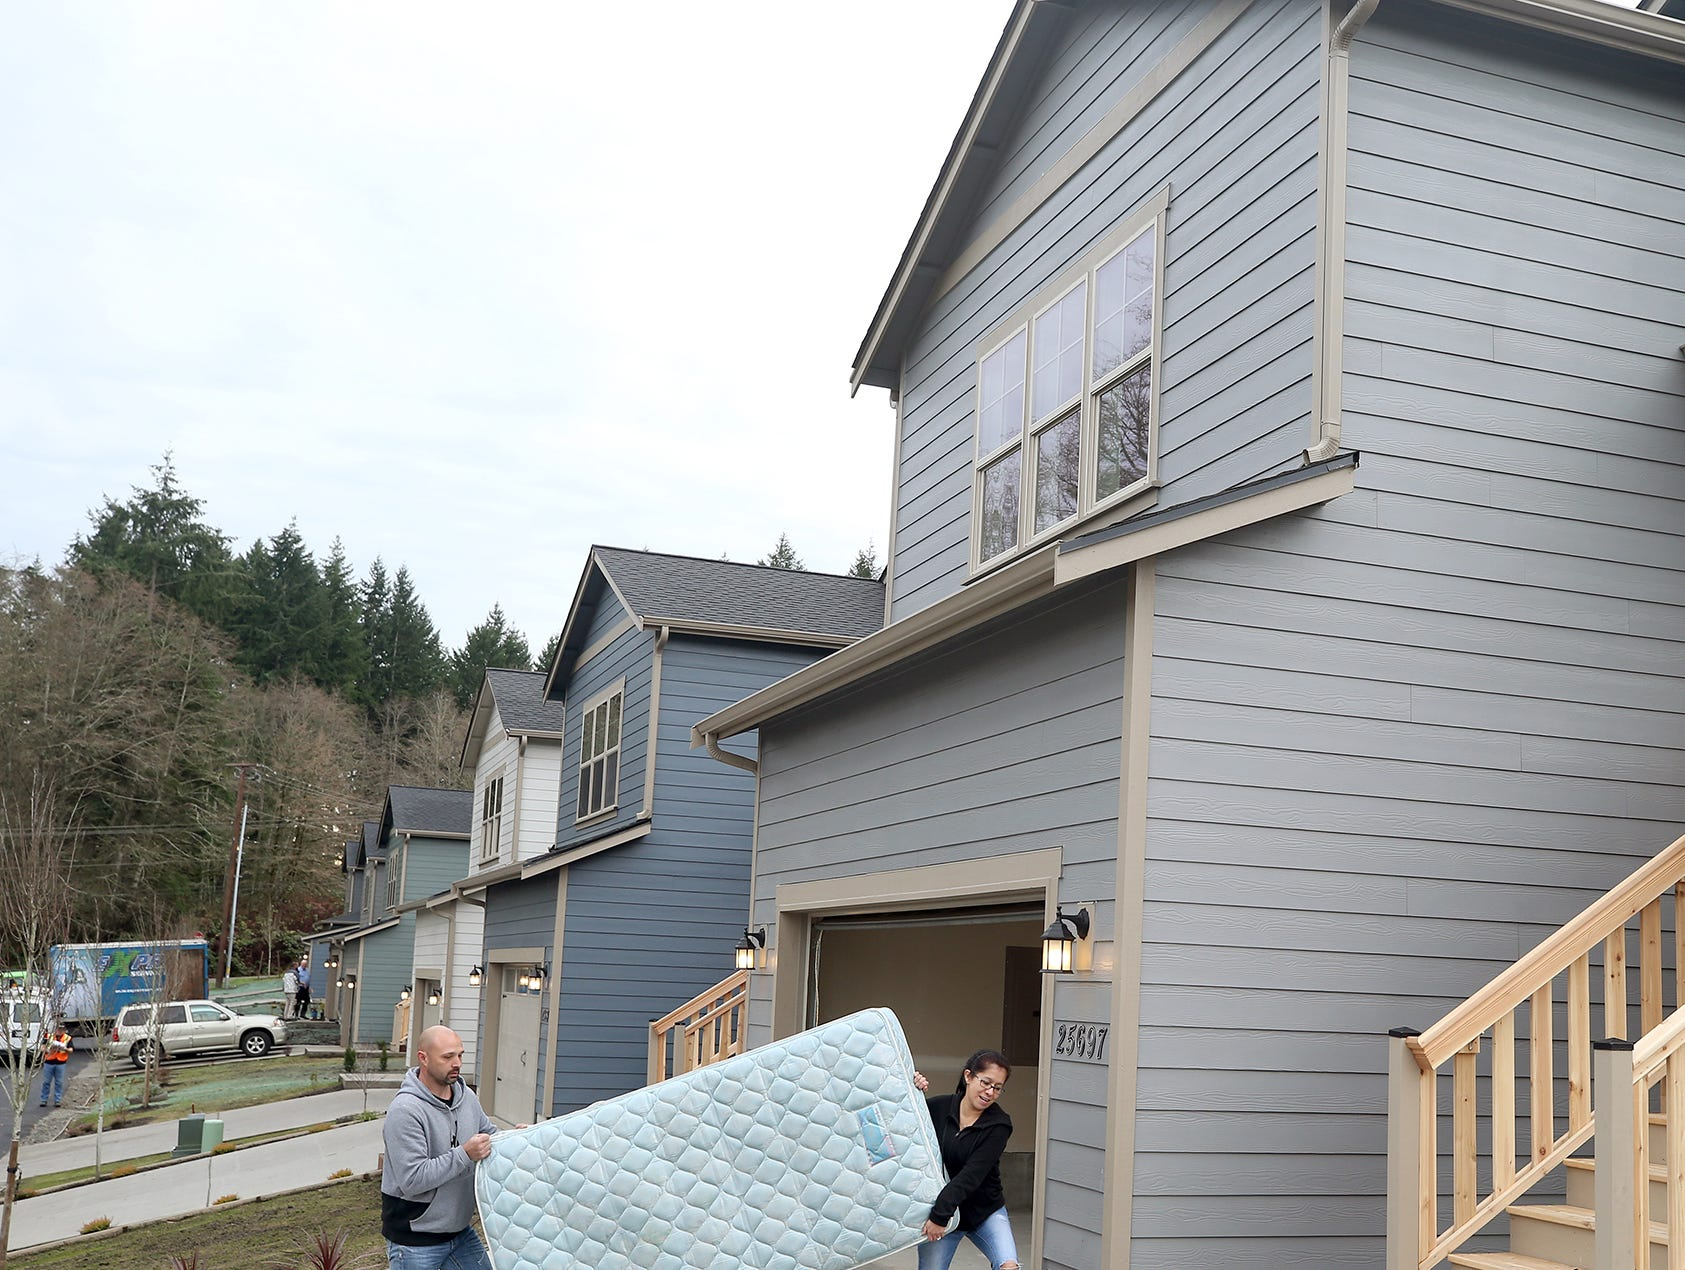 Daniel and Sara Grannell move in to their new home after the opening ceremony of the Maple Lane Group One Kitsap Housing development in Kington on Friday, December 14, 2018.